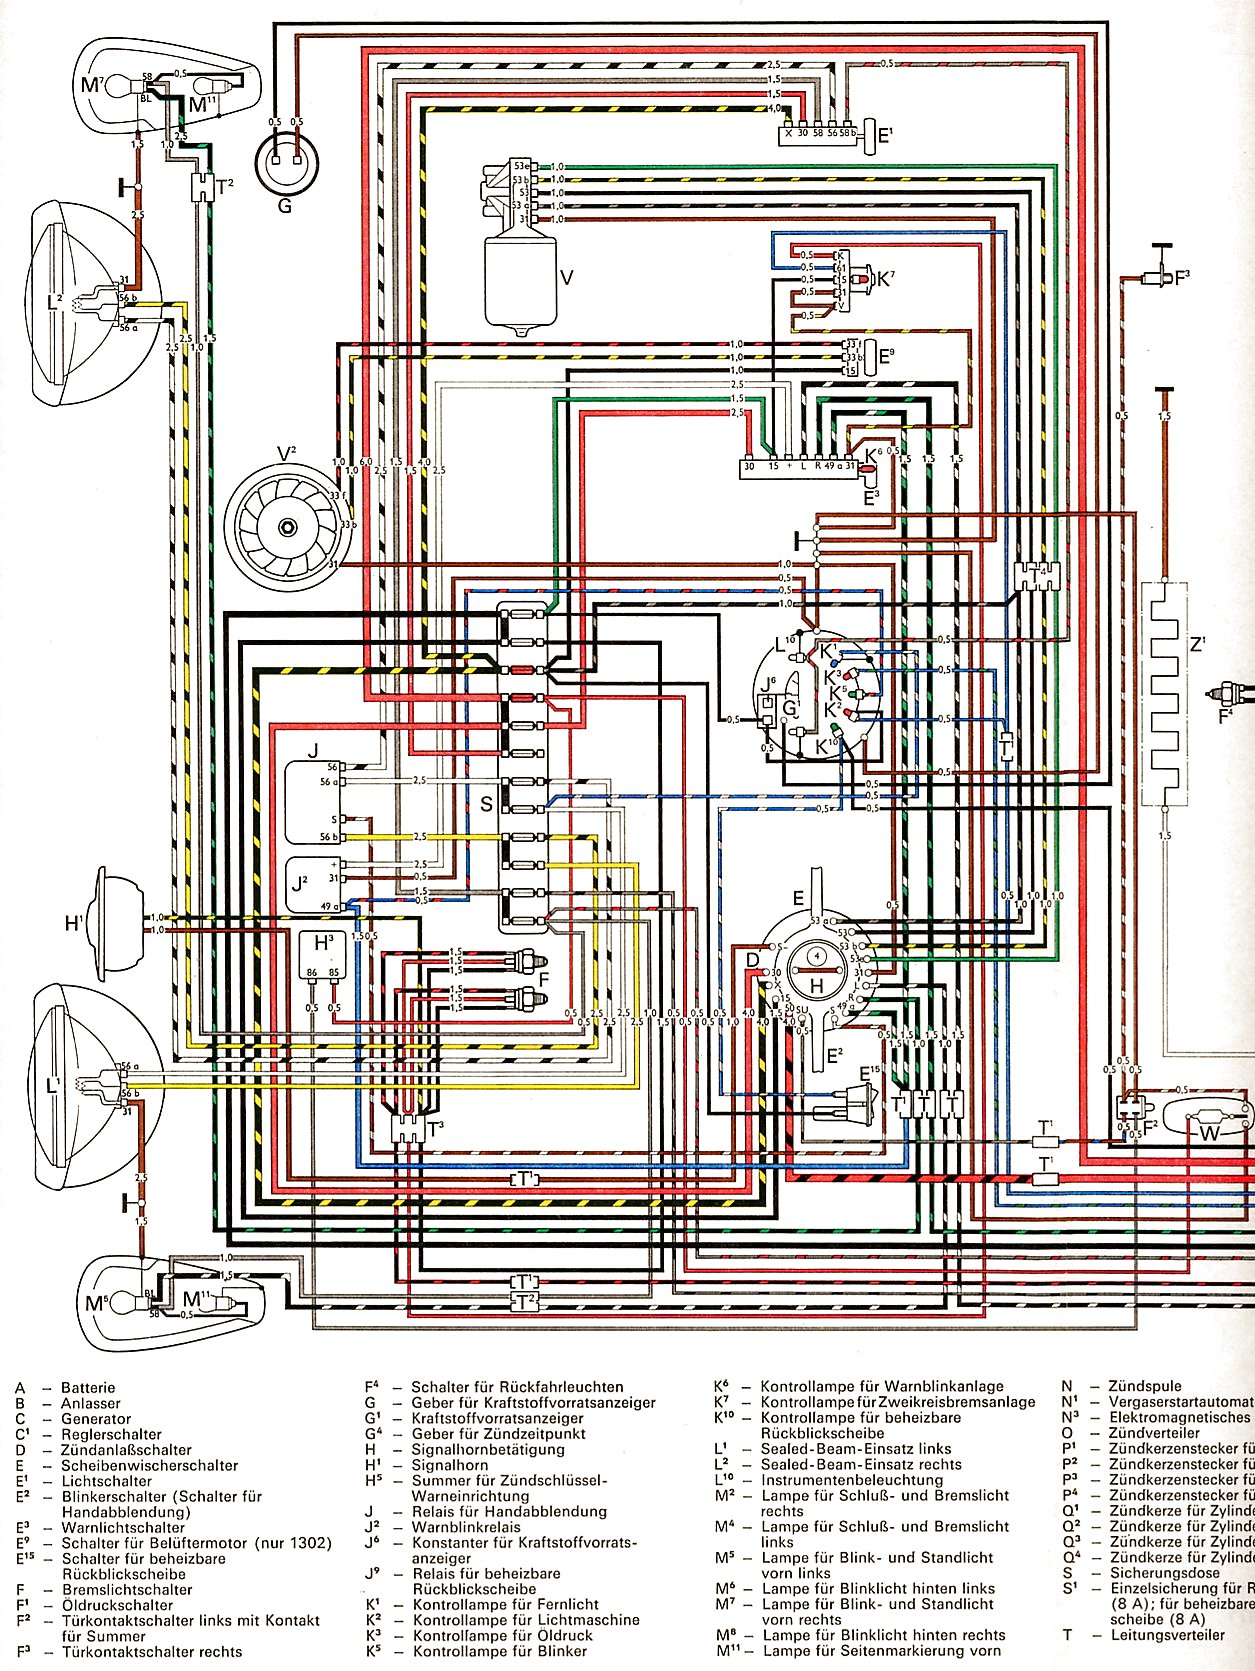 1964 Volkswagen Wiring Diagram Library 1967 Vw Beetle Color Need 1974 Standard Fuse Panel Help Shoptalkforums Com Rh